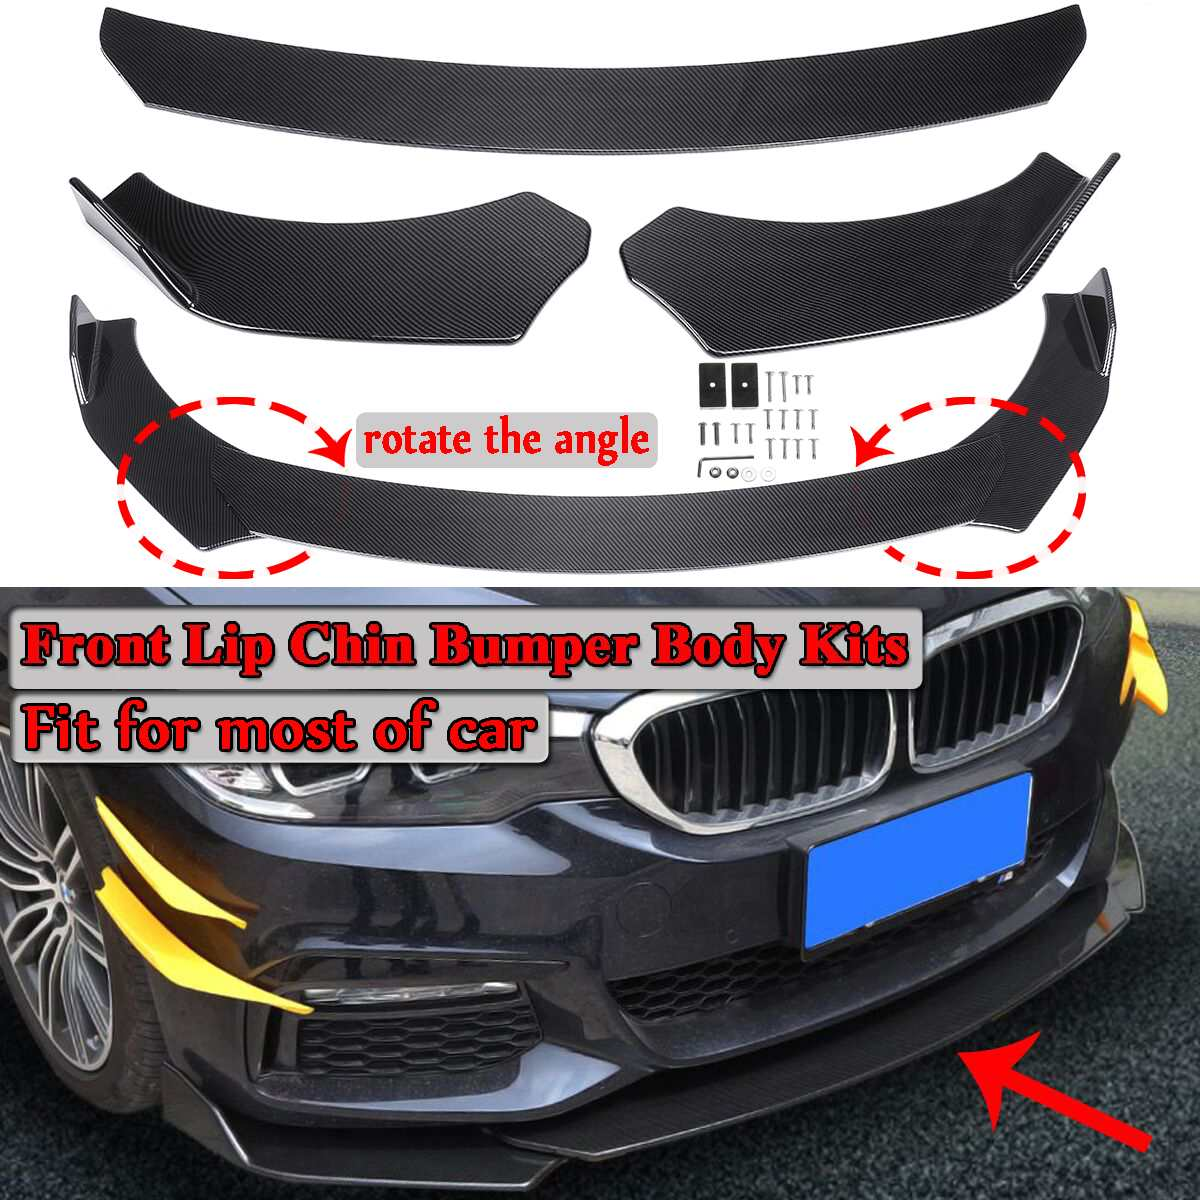 Carbon Fiber Look/ Black Universal 3Pieces Car Front Lip Chin Bumper Body Kits Rotate The Angle New For Honda For BMW For Benz